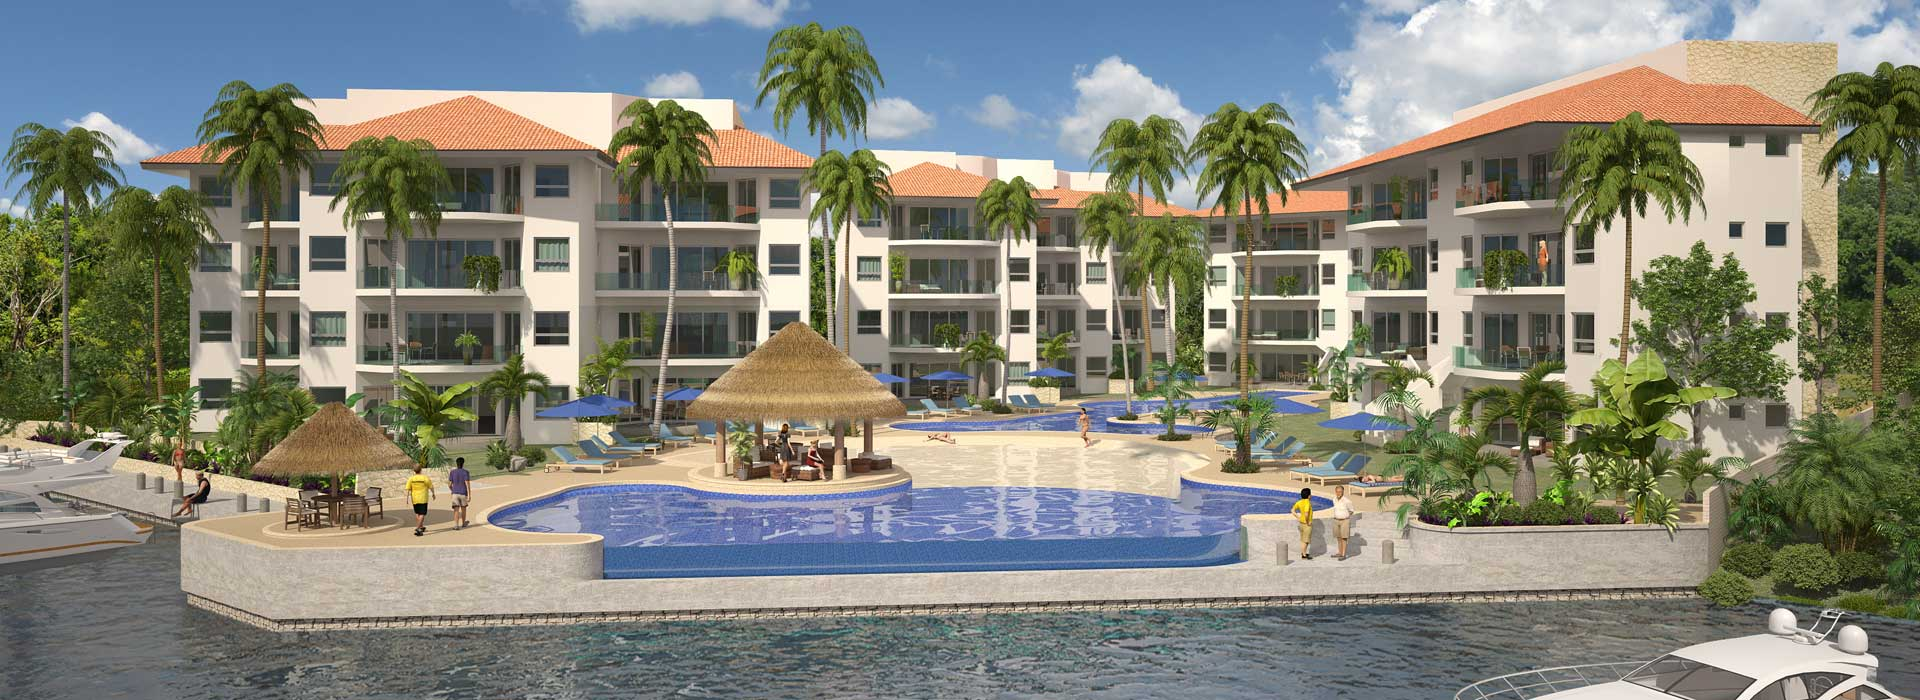 Bliss Condo in Puerto Aventuras - Pre Sale